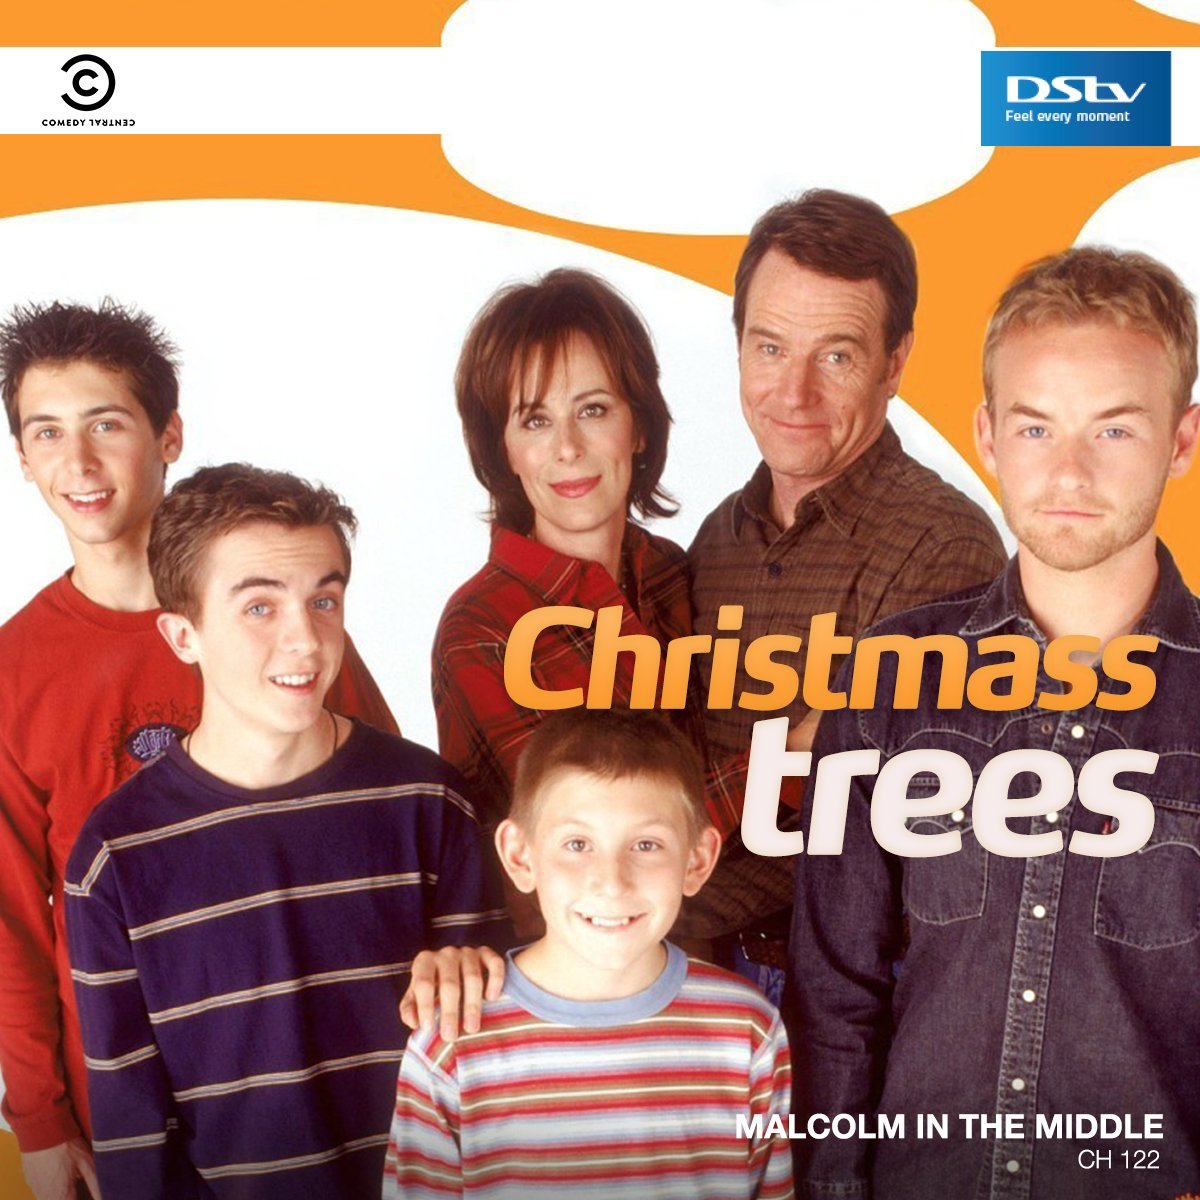 Malcolm In The Middle Christmas.Dstv Kenya On Twitter Hal And The Boys Sell Christmas